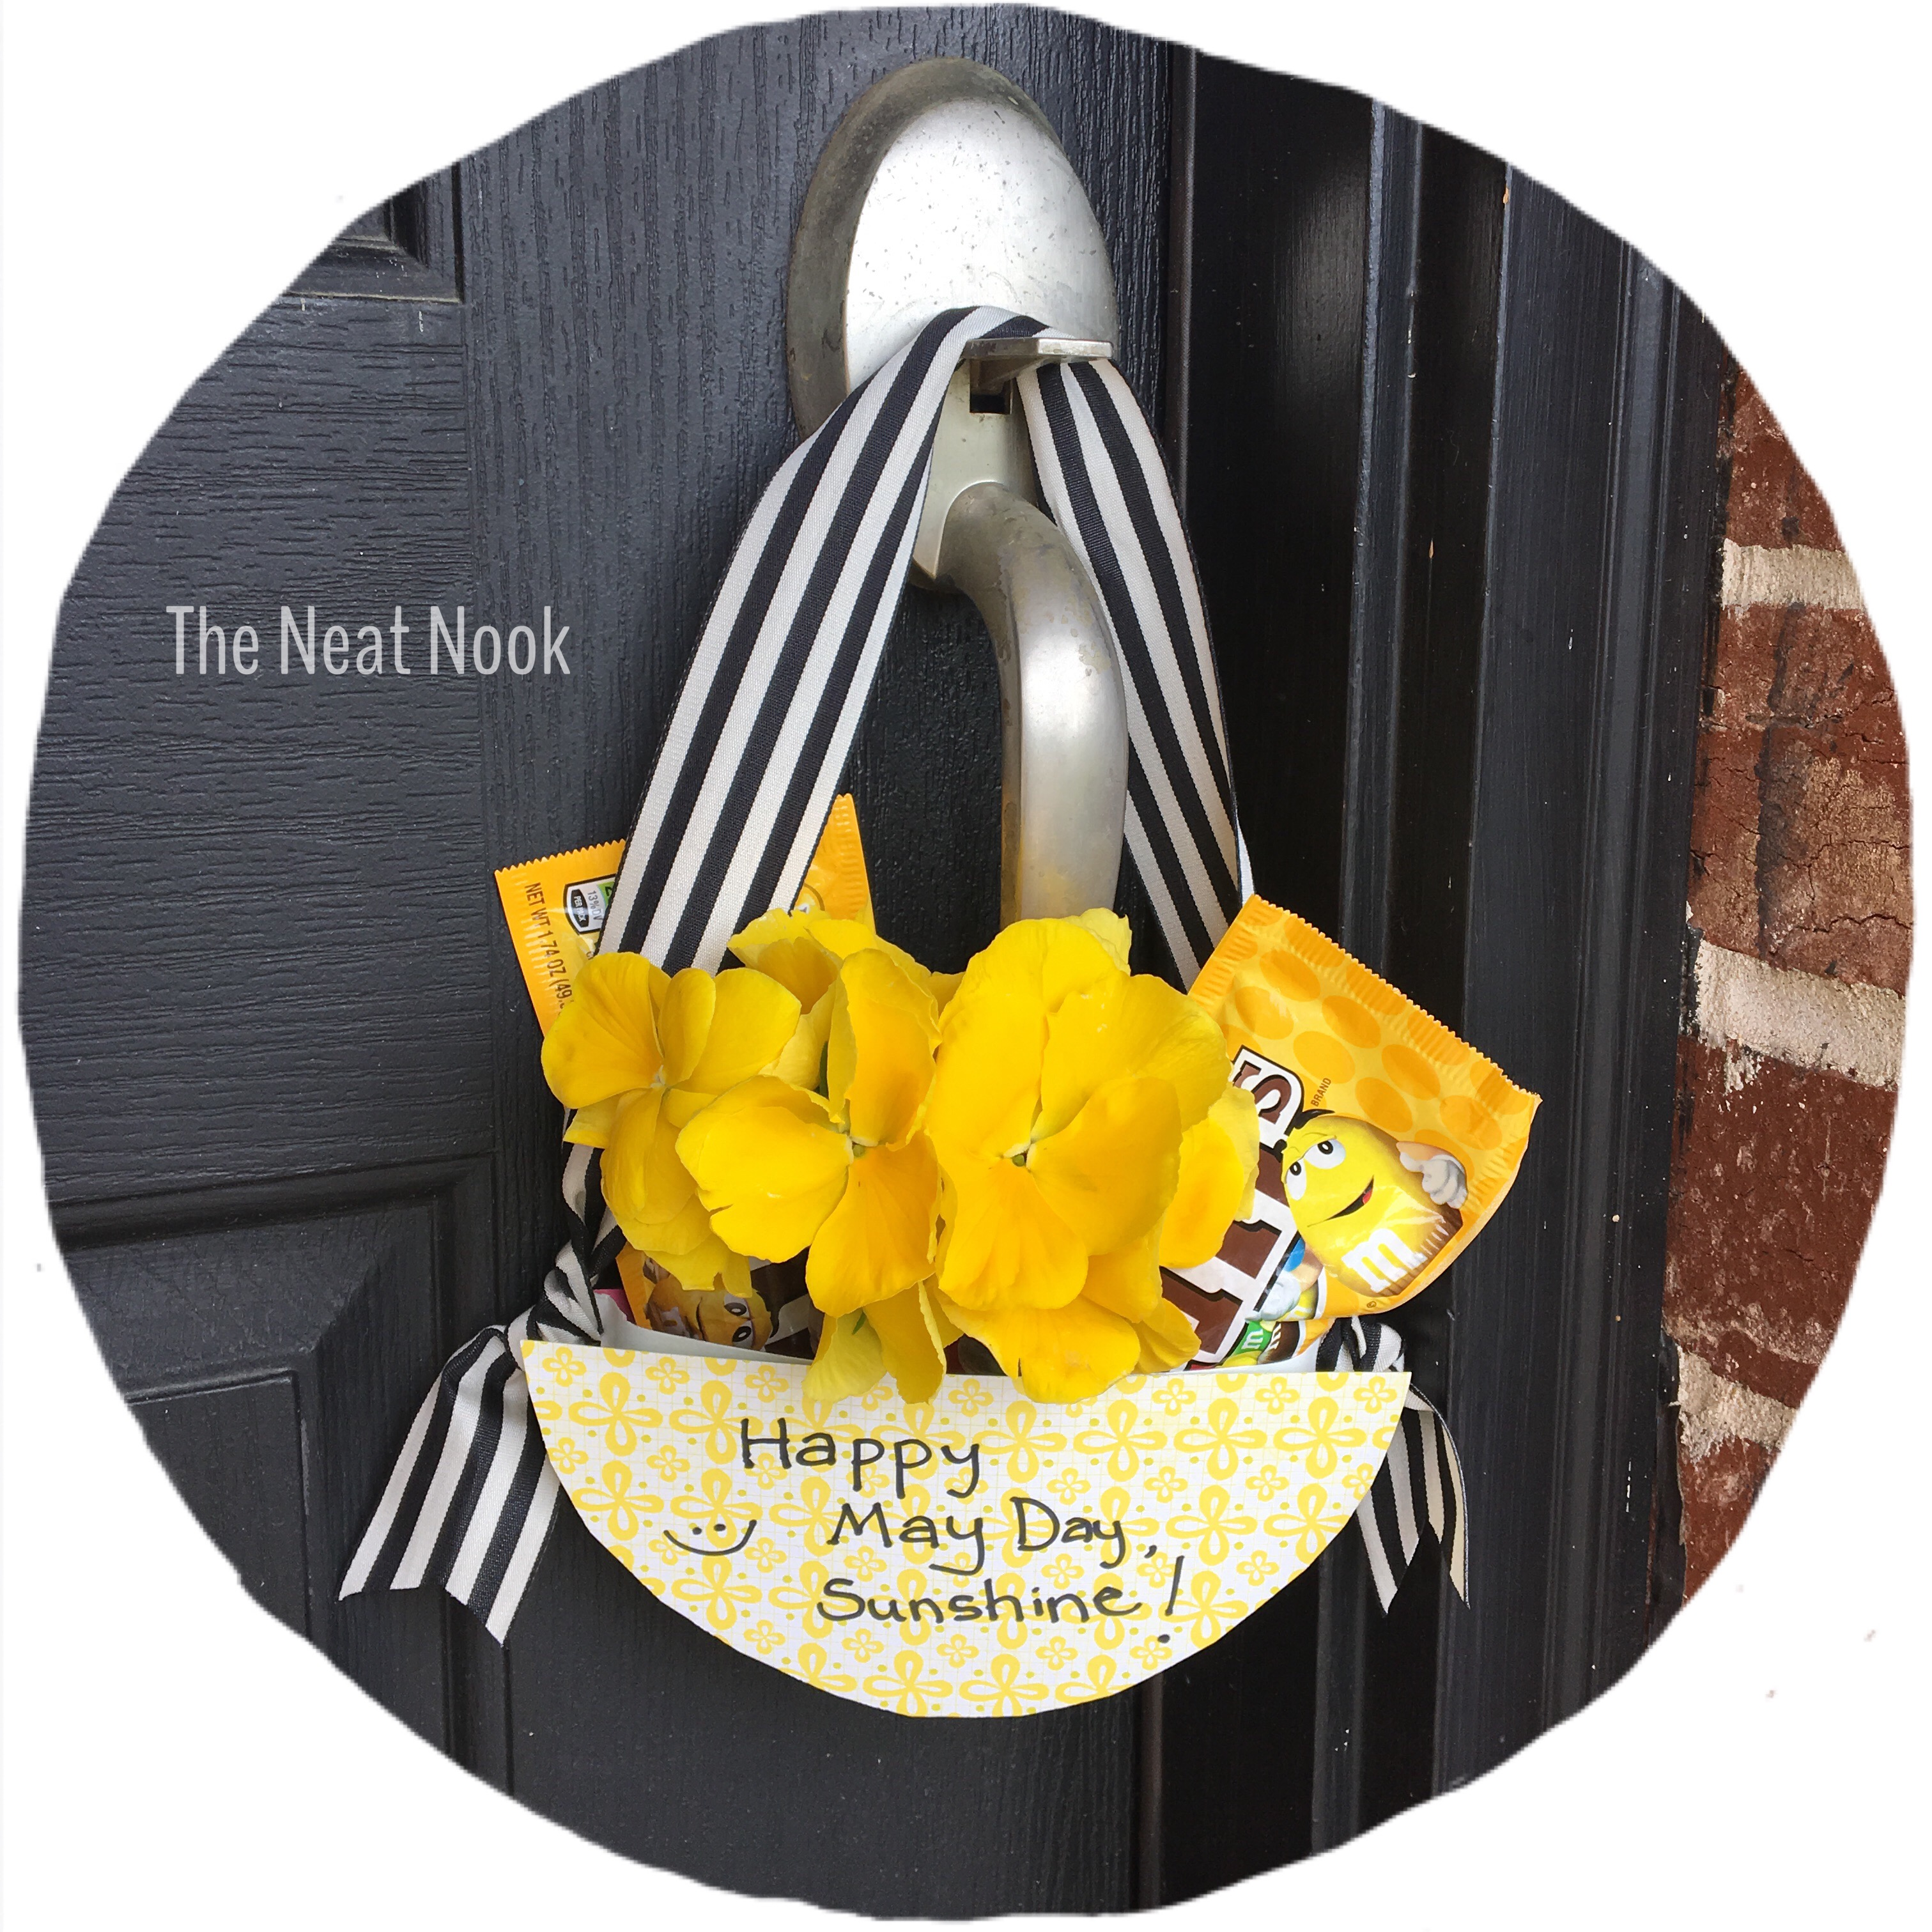 Five ways to make may day baskets the neat nook for the candy lovers in your life this would make a fun may day surprise here are the supplies needed for this bright and sunny basket mightylinksfo